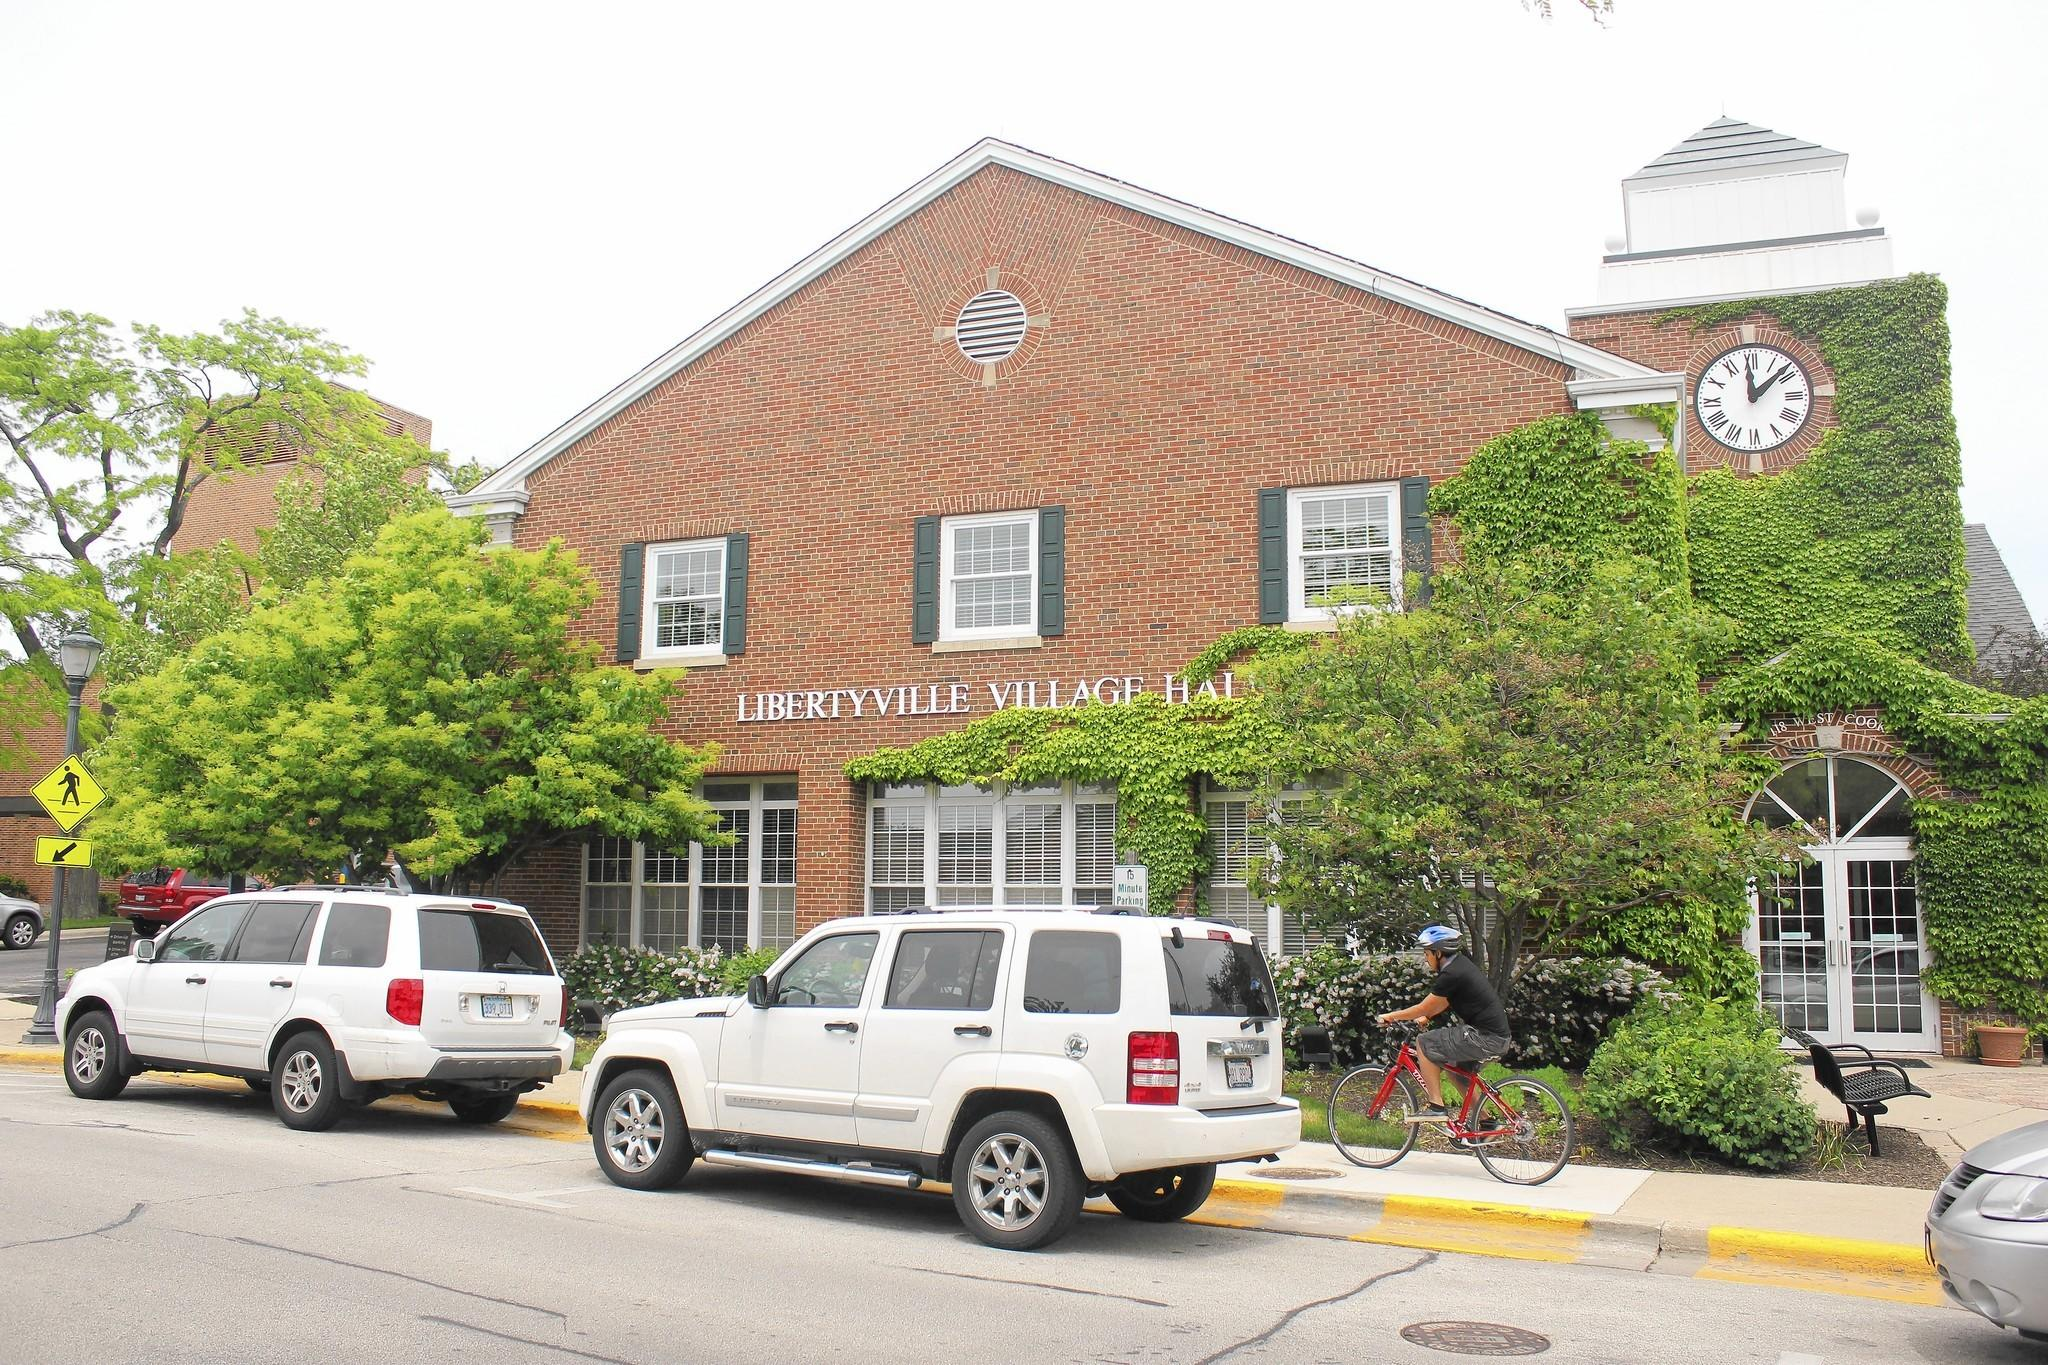 Libertyville officials are looking into a number of liquor law changes, including reducing the hours of operations for bars and putting a BYOB law on the books.